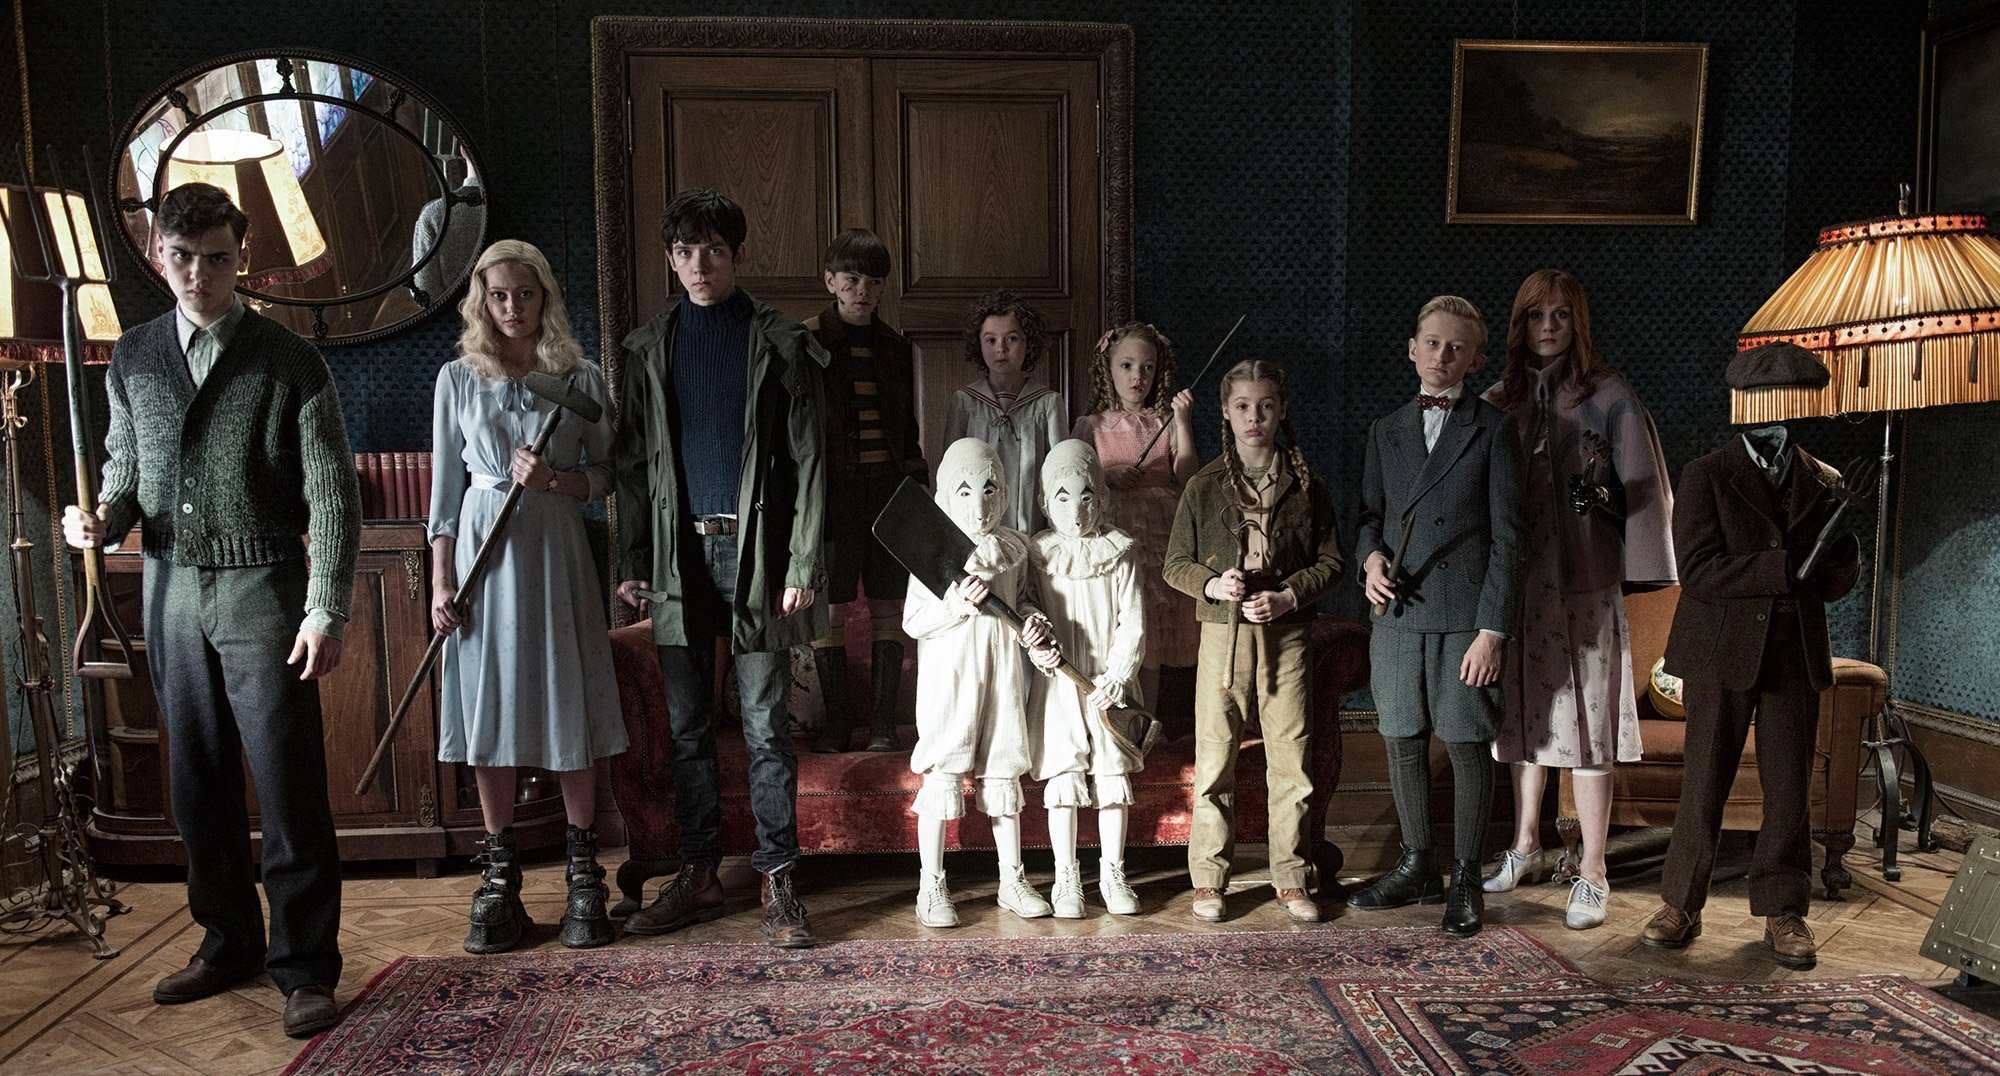 Trailer & Review:  Miss Peregrine's Home for Peculiar Children